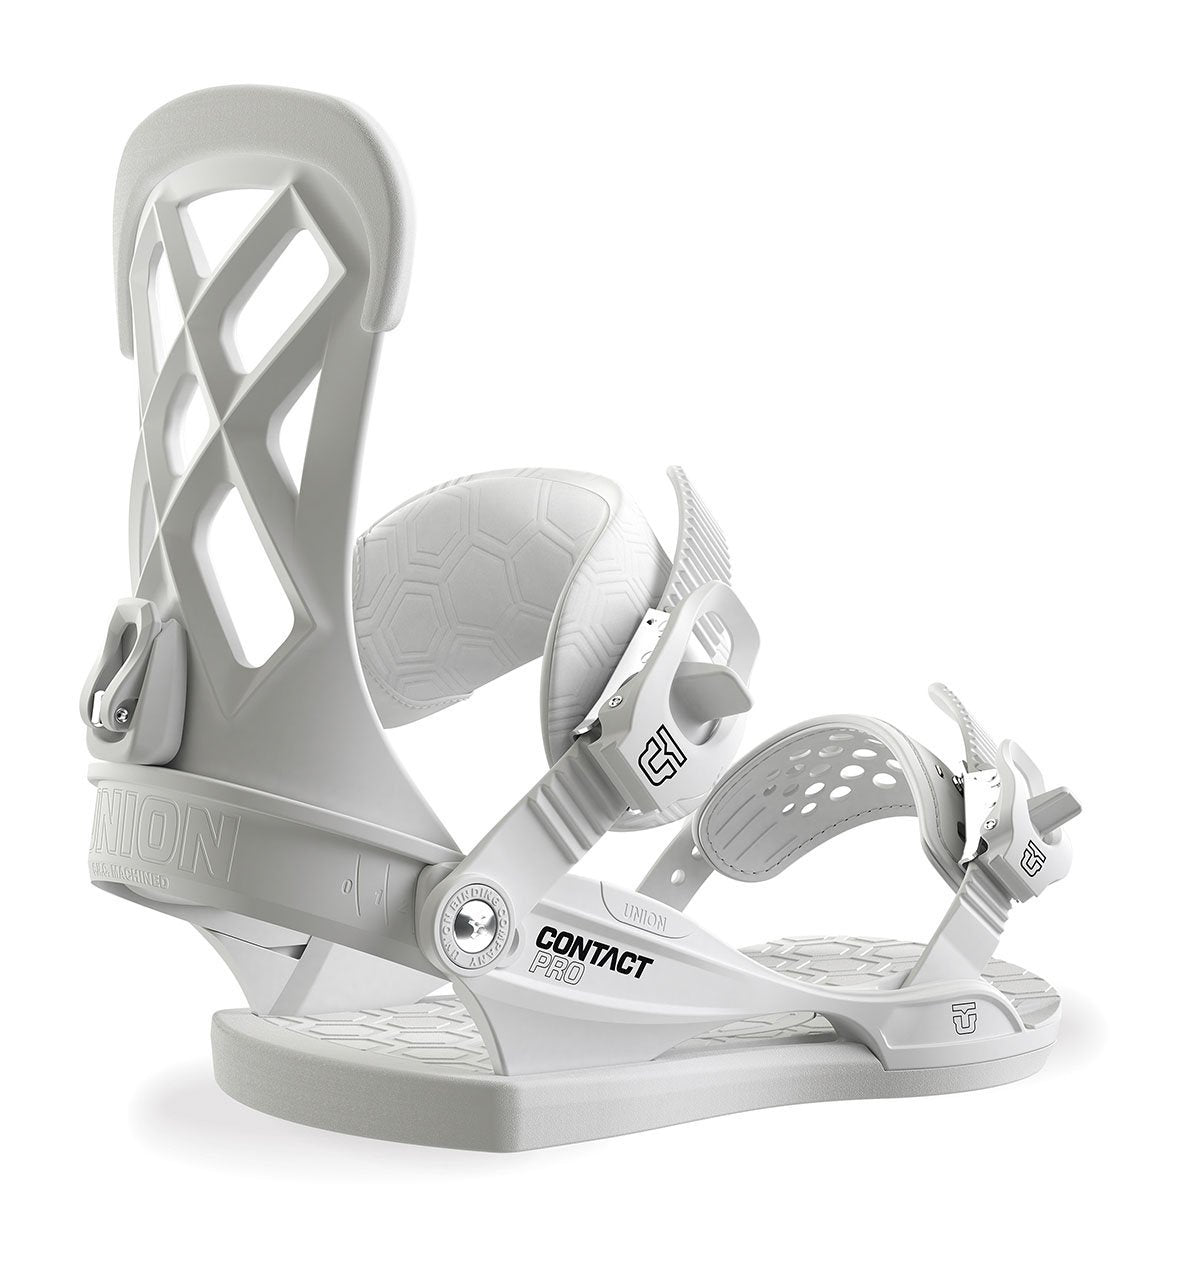 Union contact pro snowboardbinding 2019 fra union bindings på blacksnow.dk